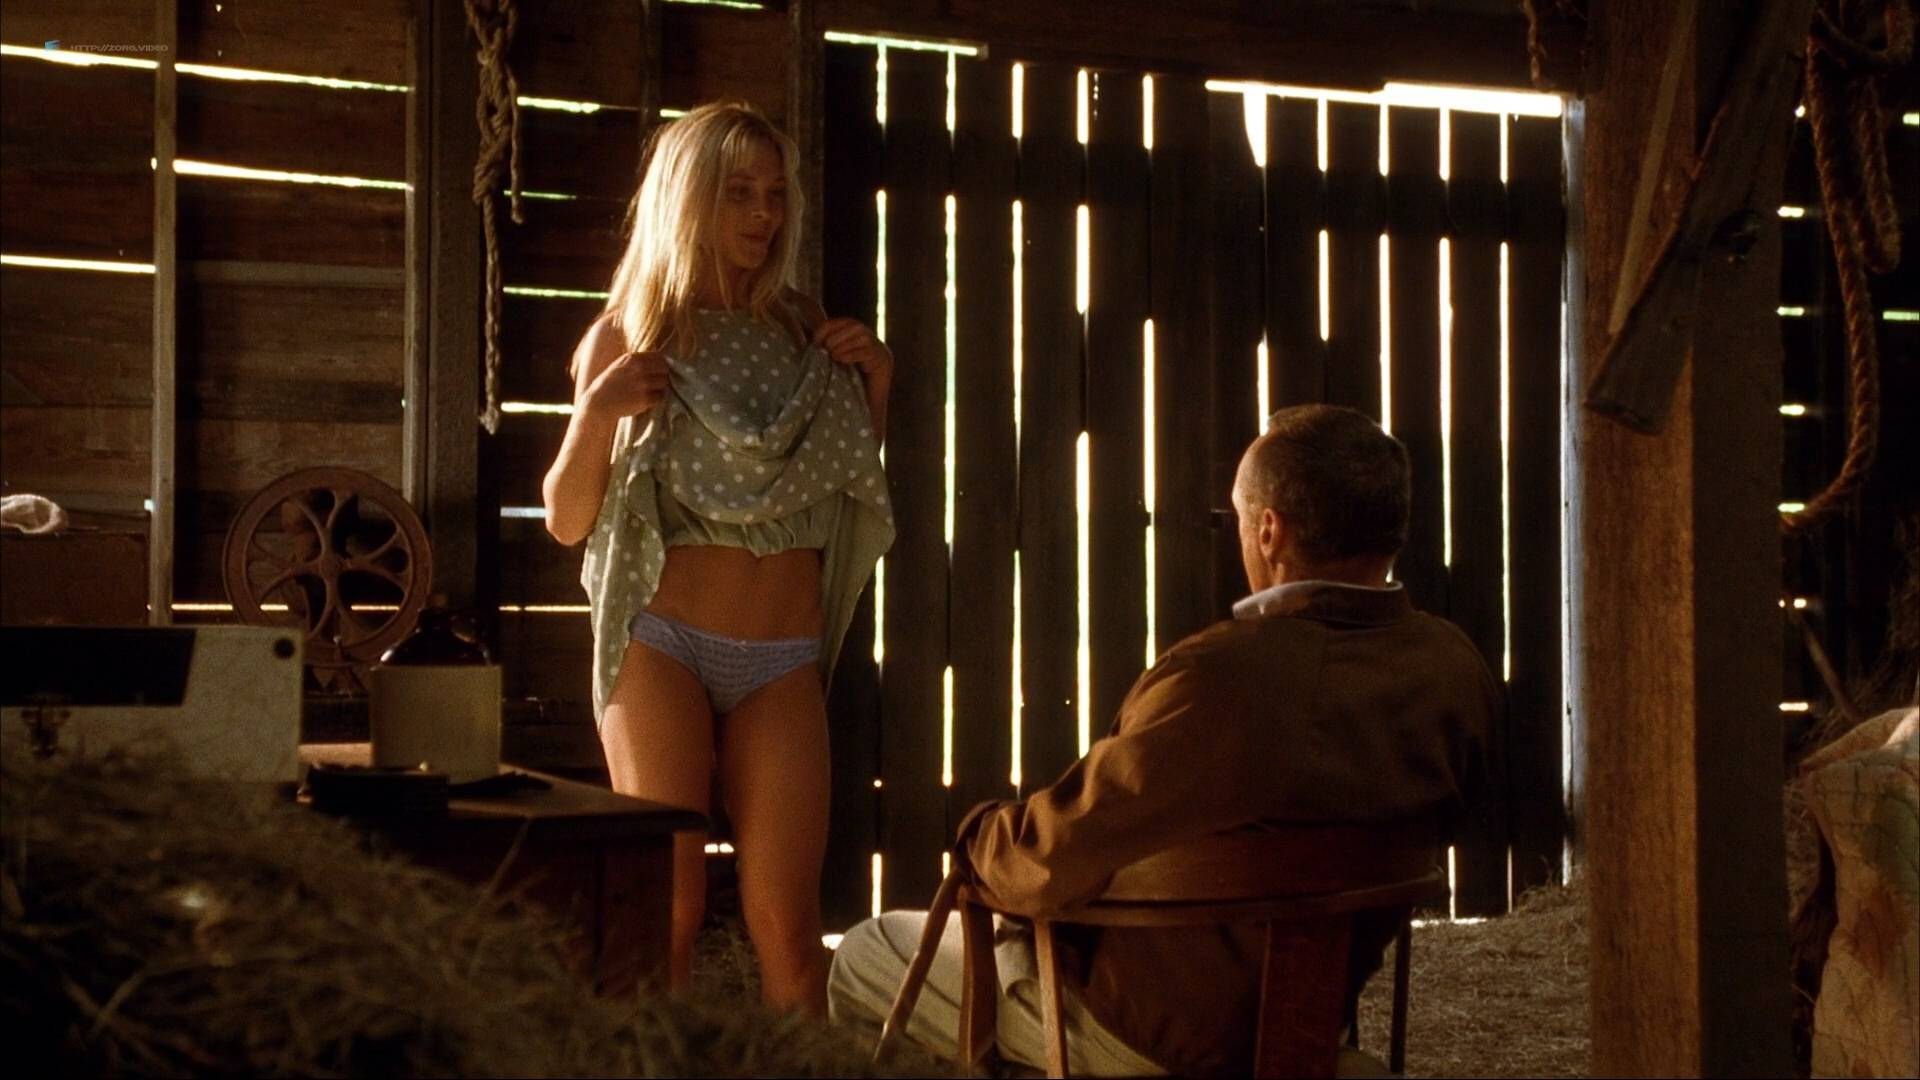 Naked Amy Locane in Carried Away